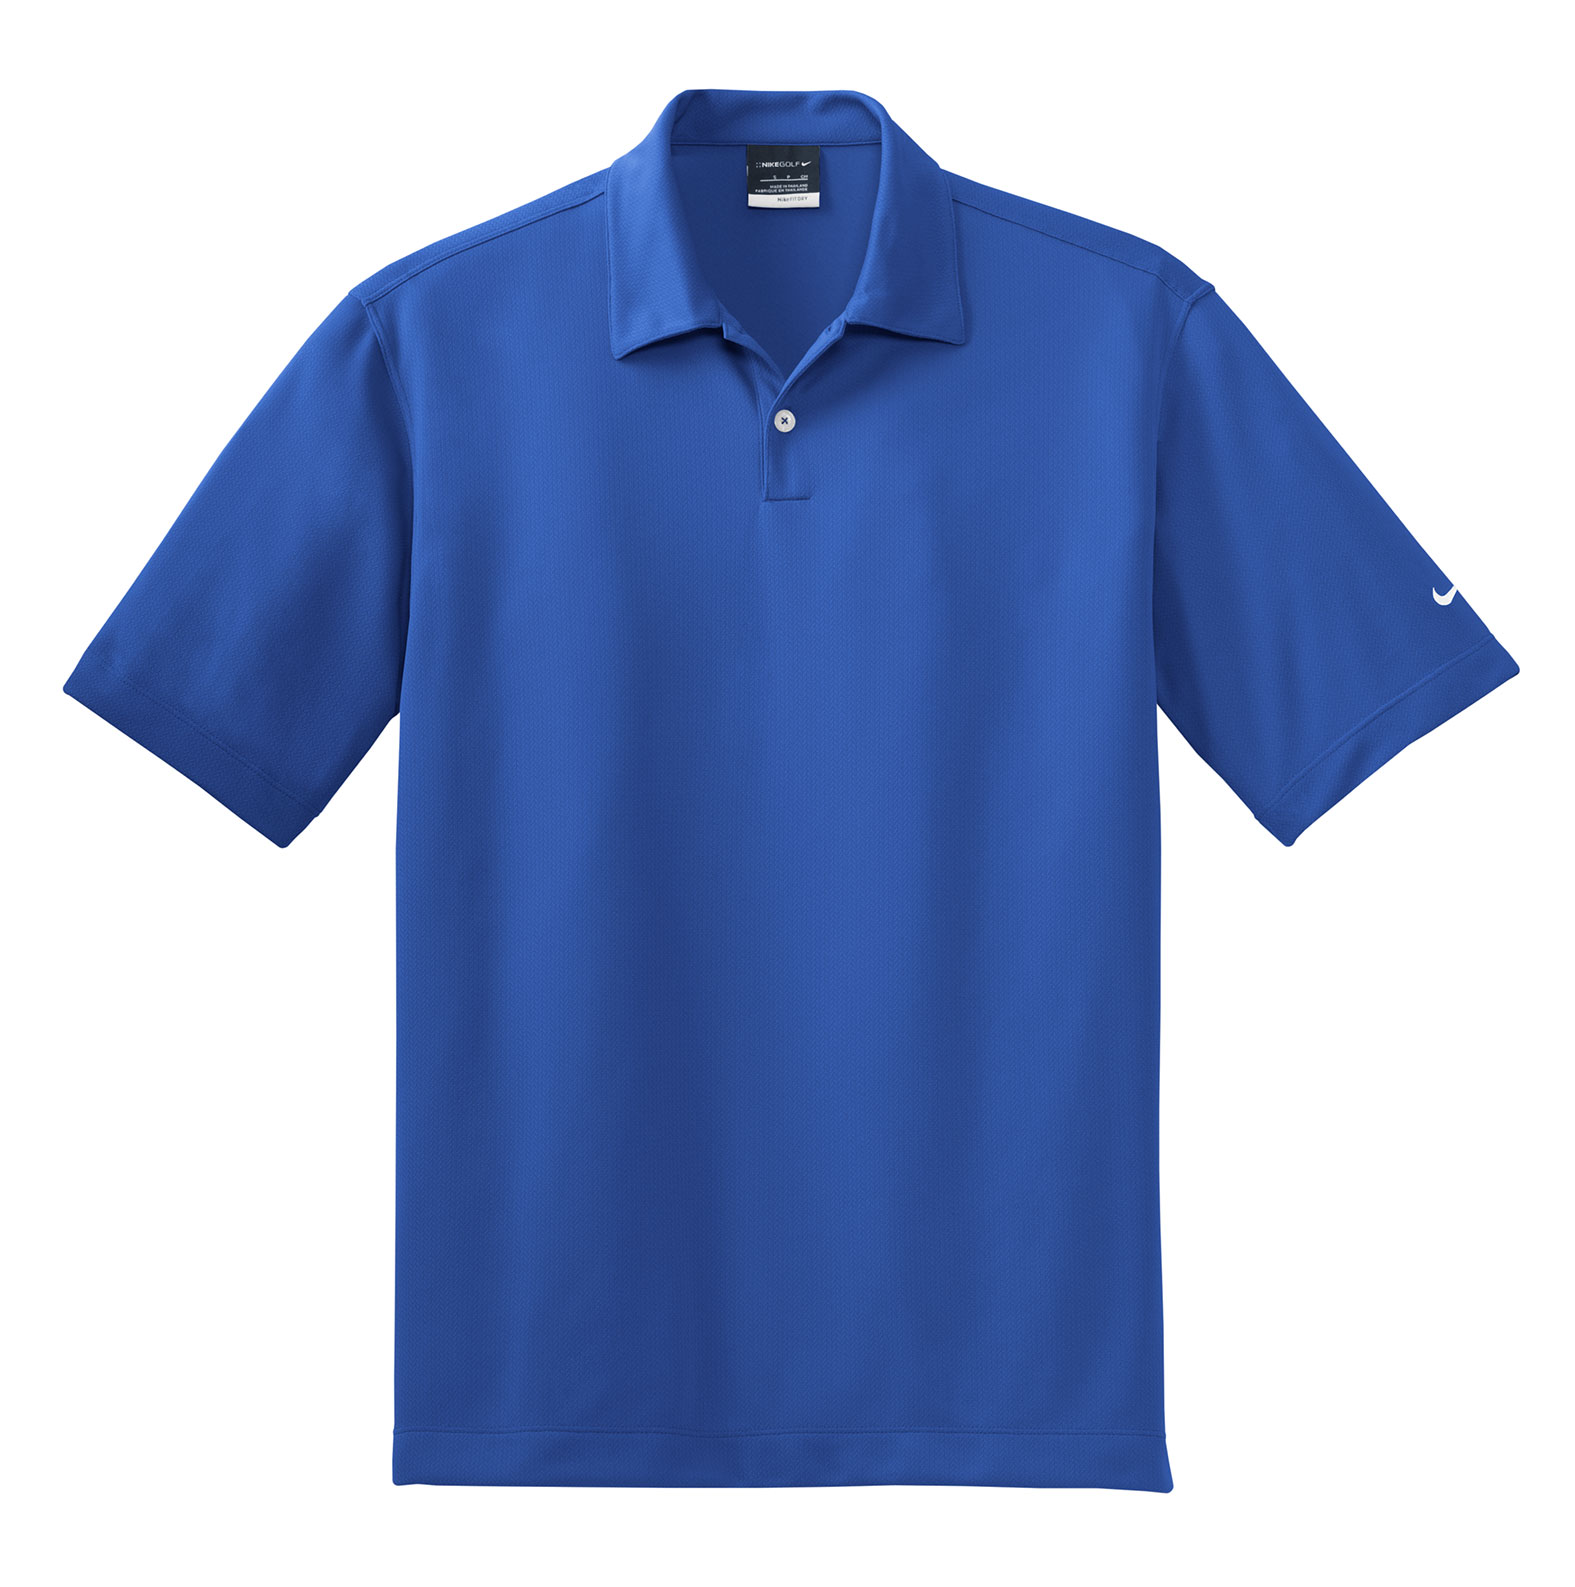 9ae298bfc700b Nike Golf Mens Dri-FIT Pebble Texture Polo